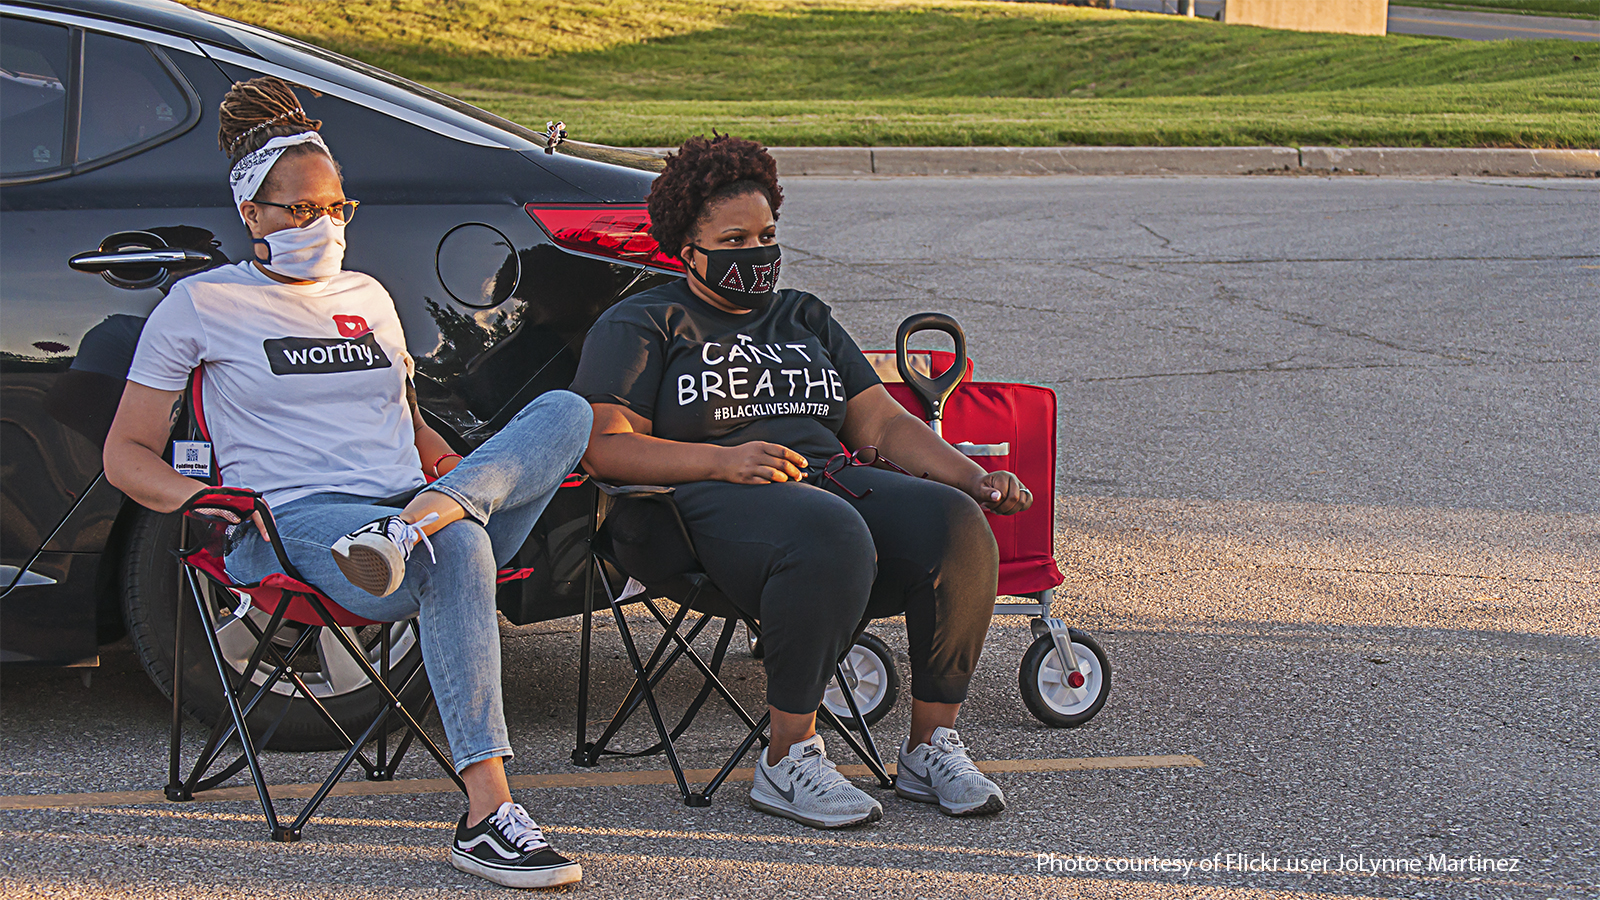 Black women during a Black Lives Matter protest in July 2020.